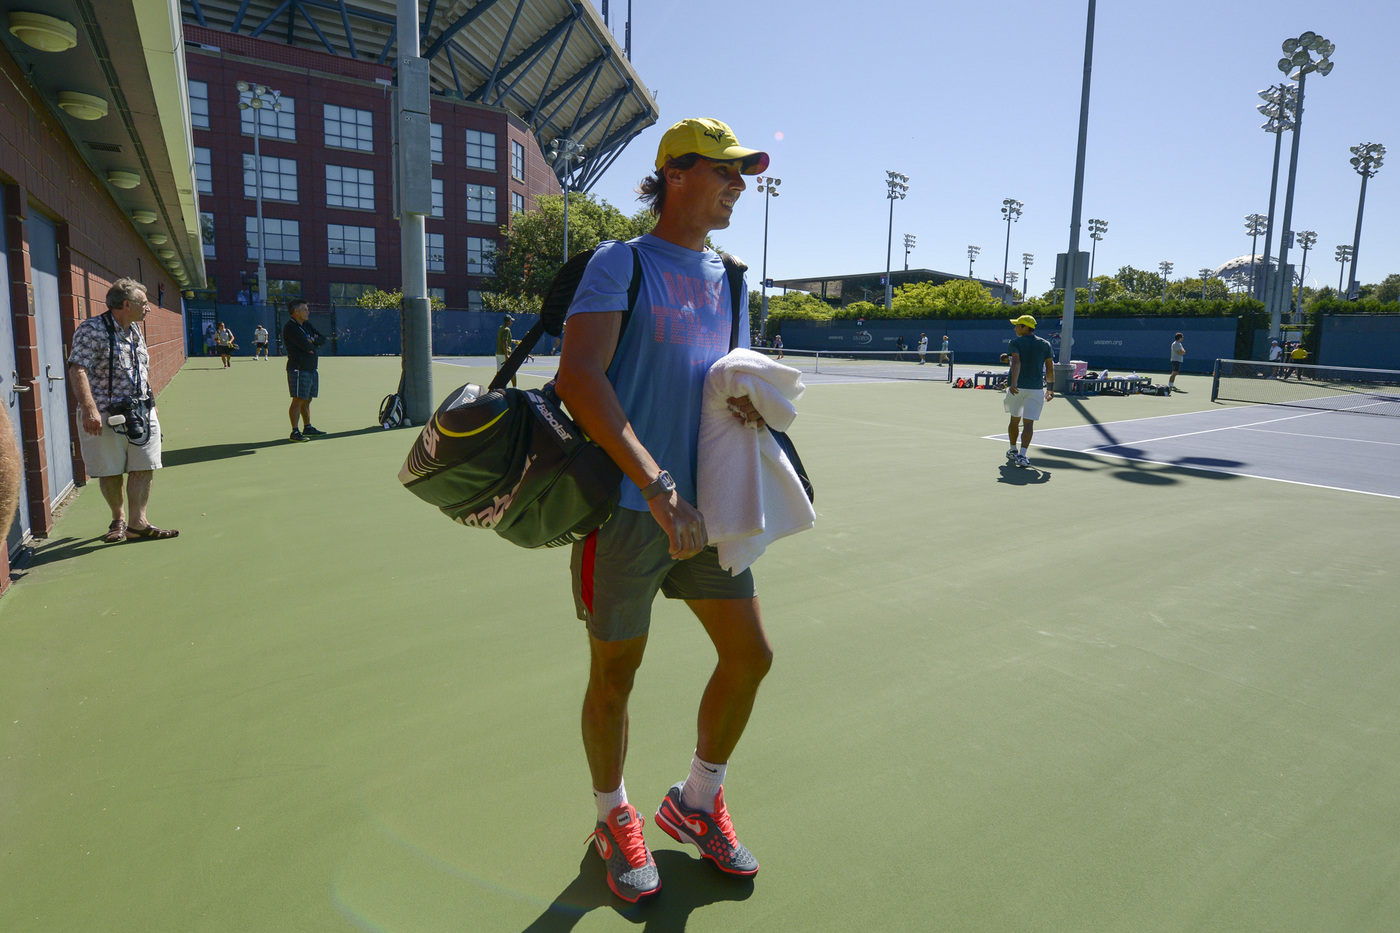 Mike Lawrence/usopen.org